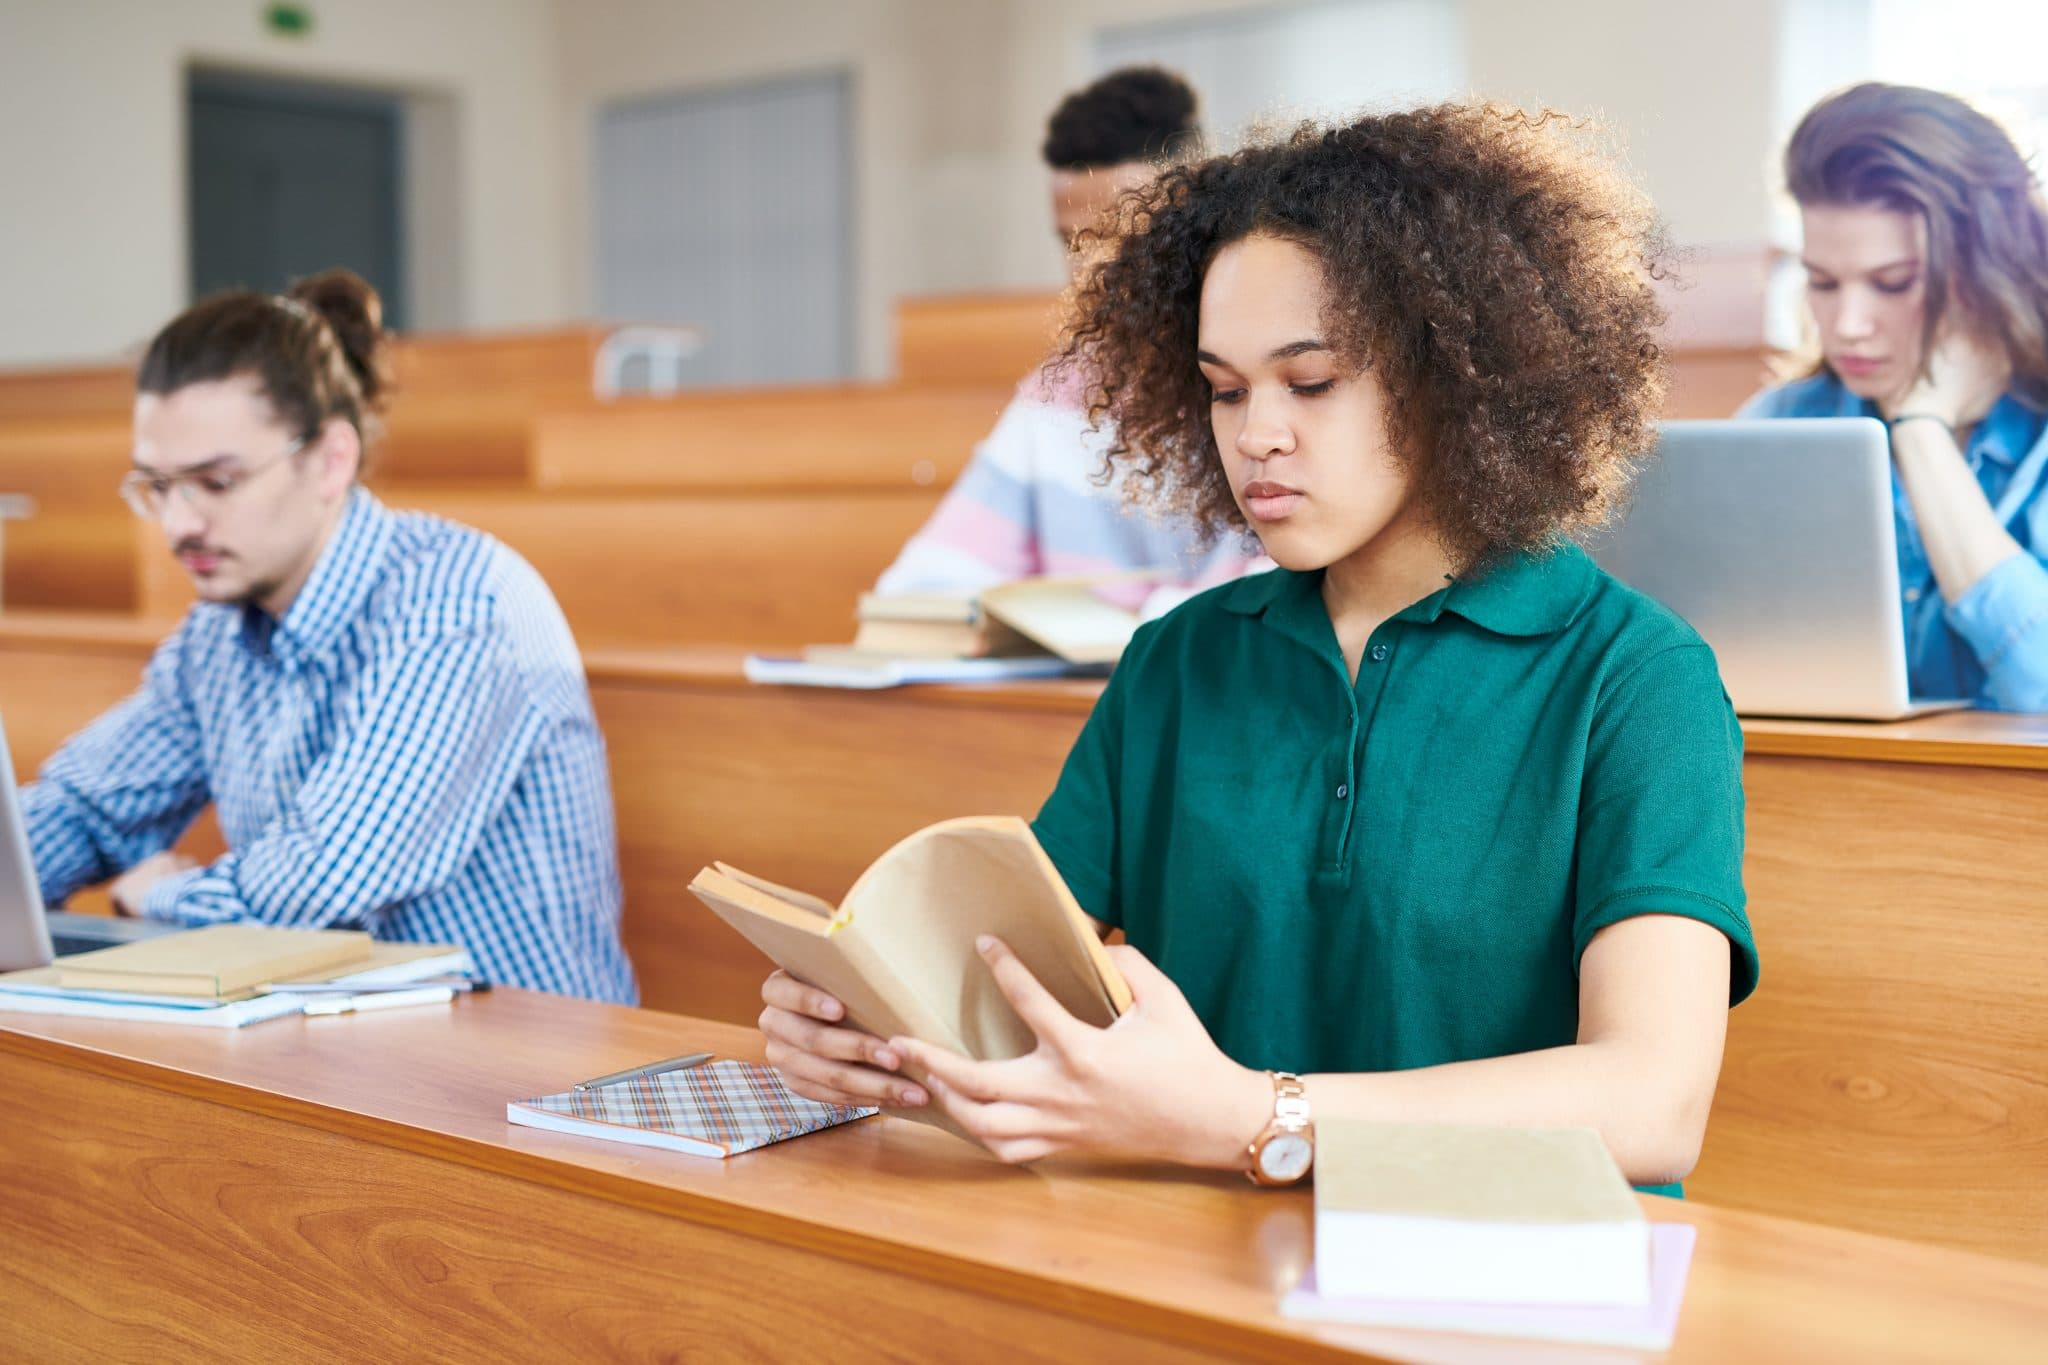 International SAT Test Dates for Students in 2020